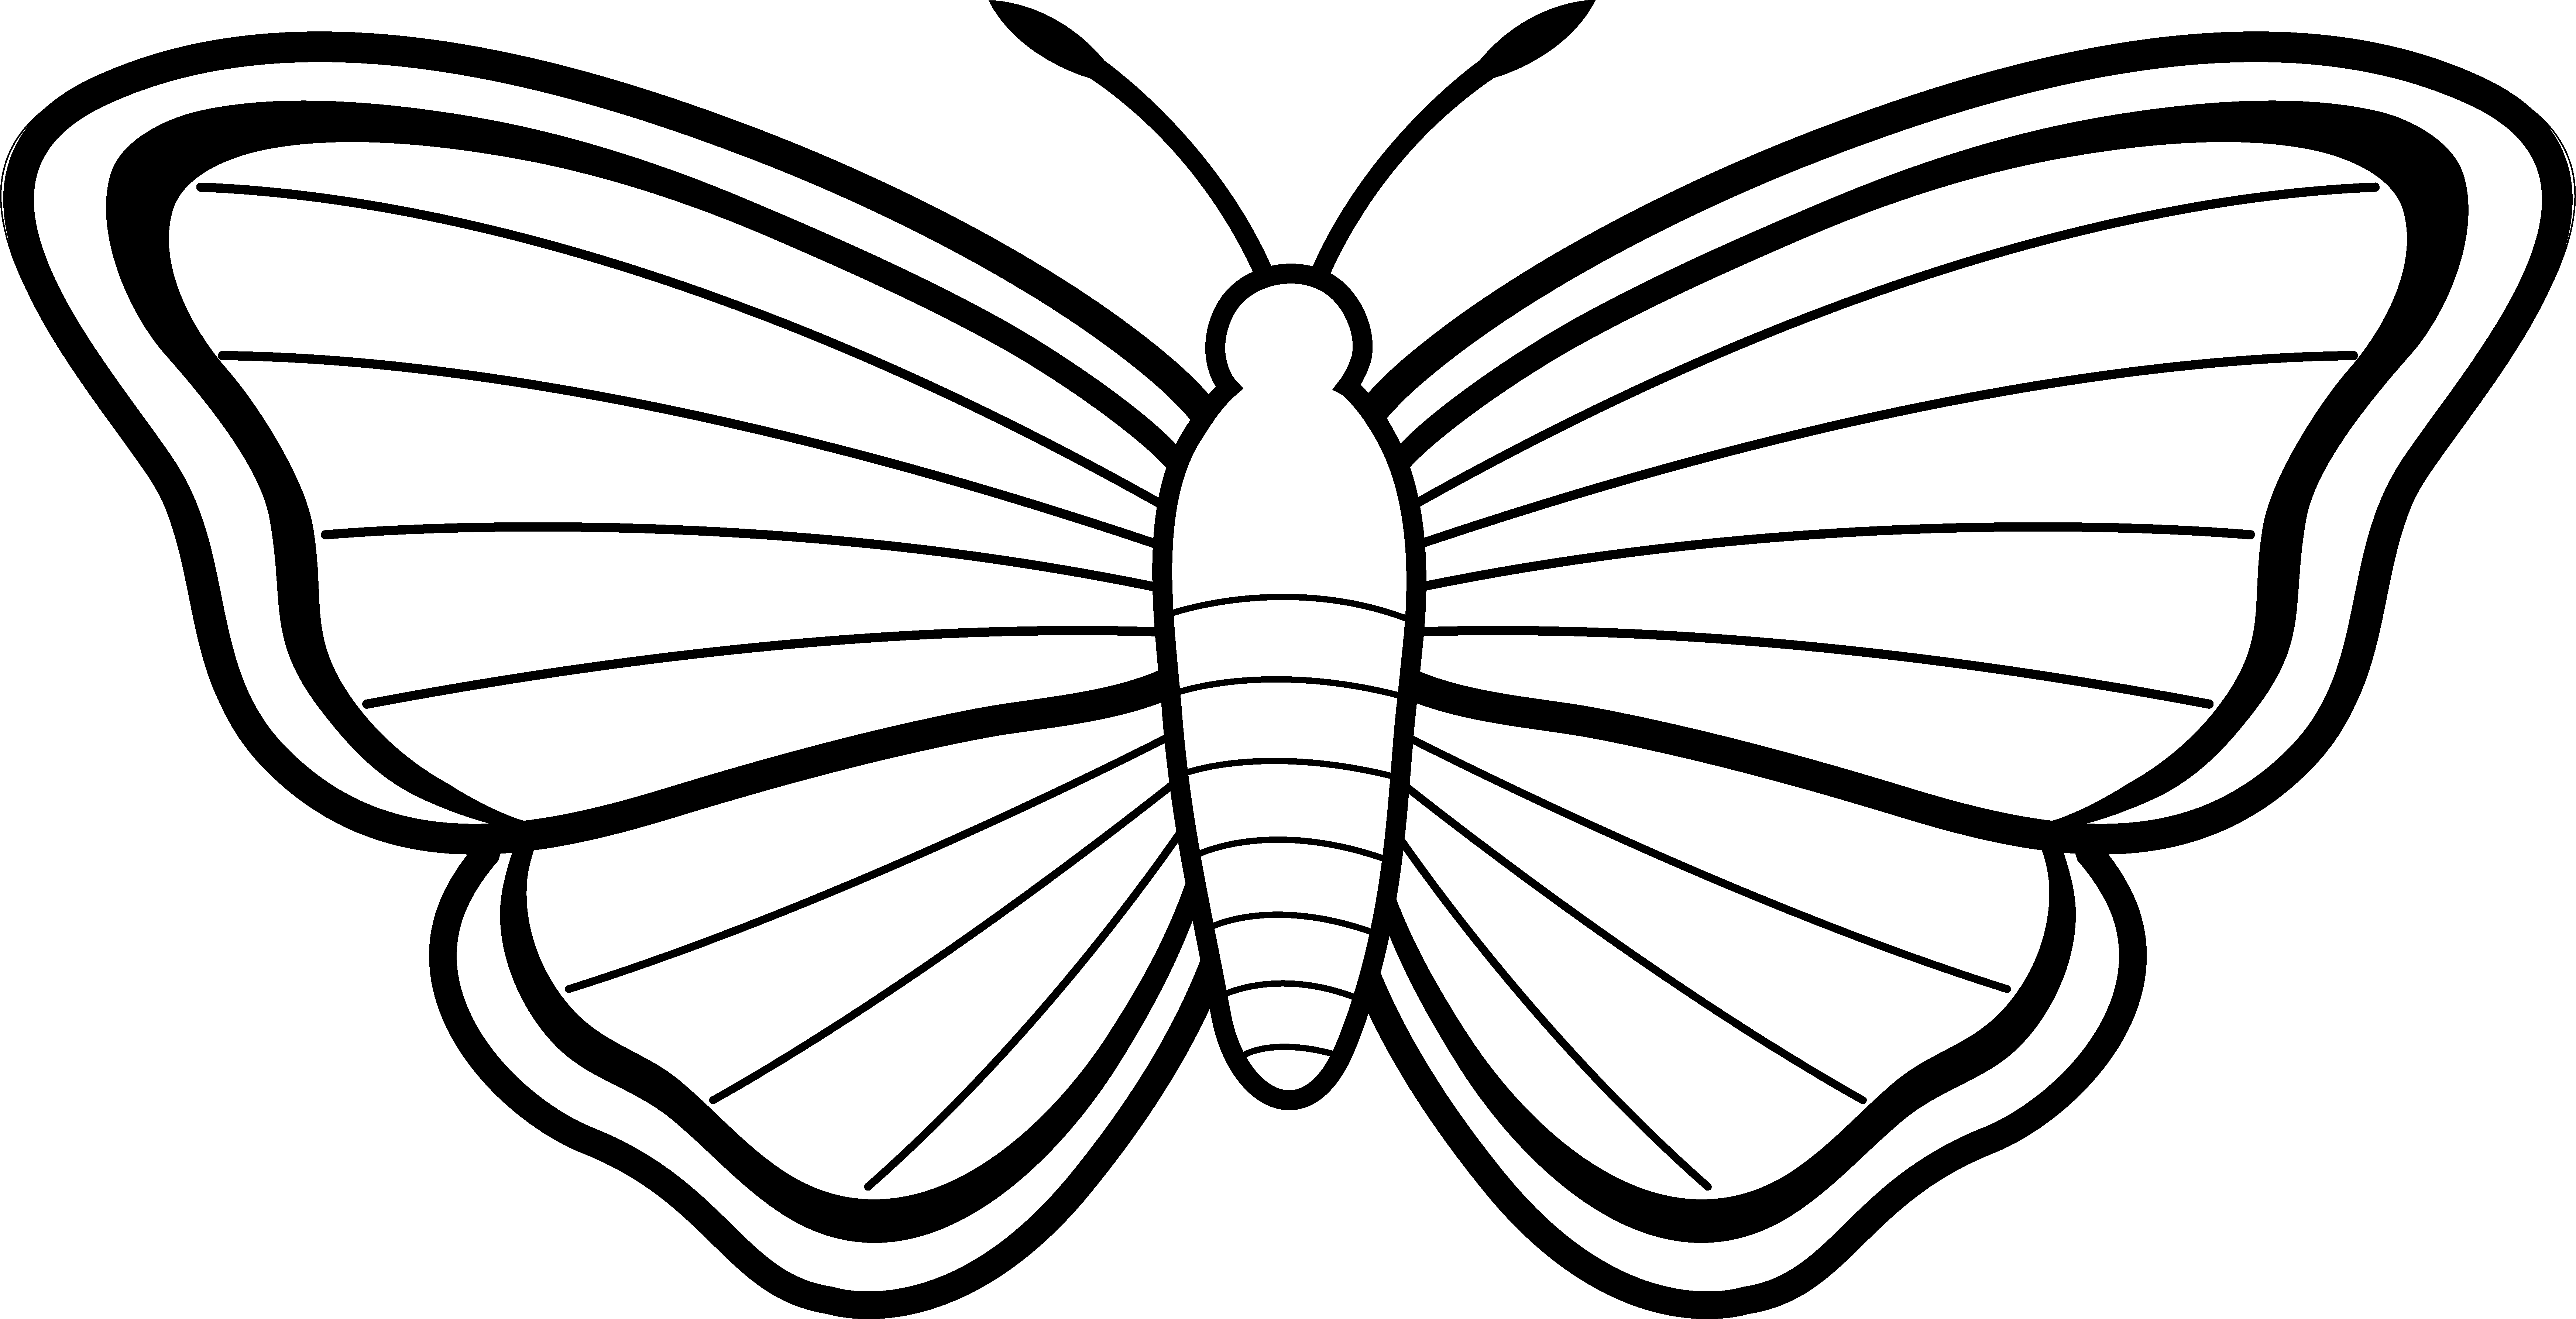 Art Clip Picture Butterfly Drawings Black And White Moth Design Free Clip Art Butterfly Coloring Page Butterfly Clip Art Butterfly Black And White